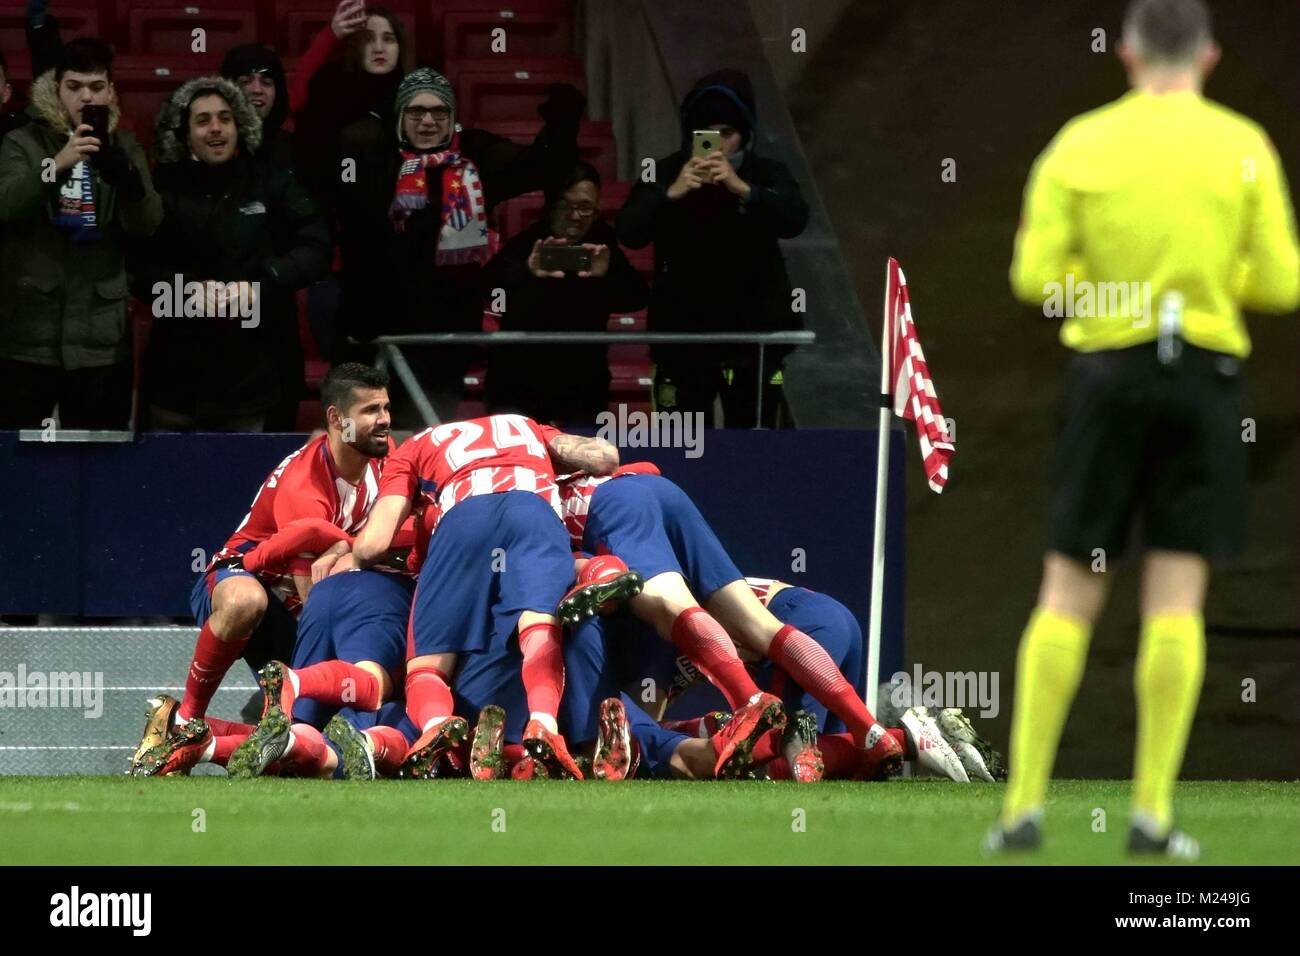 Madrid, Spain. 4th Feb, 2018. Atletico Madrid's players celebrate during a Spanish league match between Atletico - Stock Image